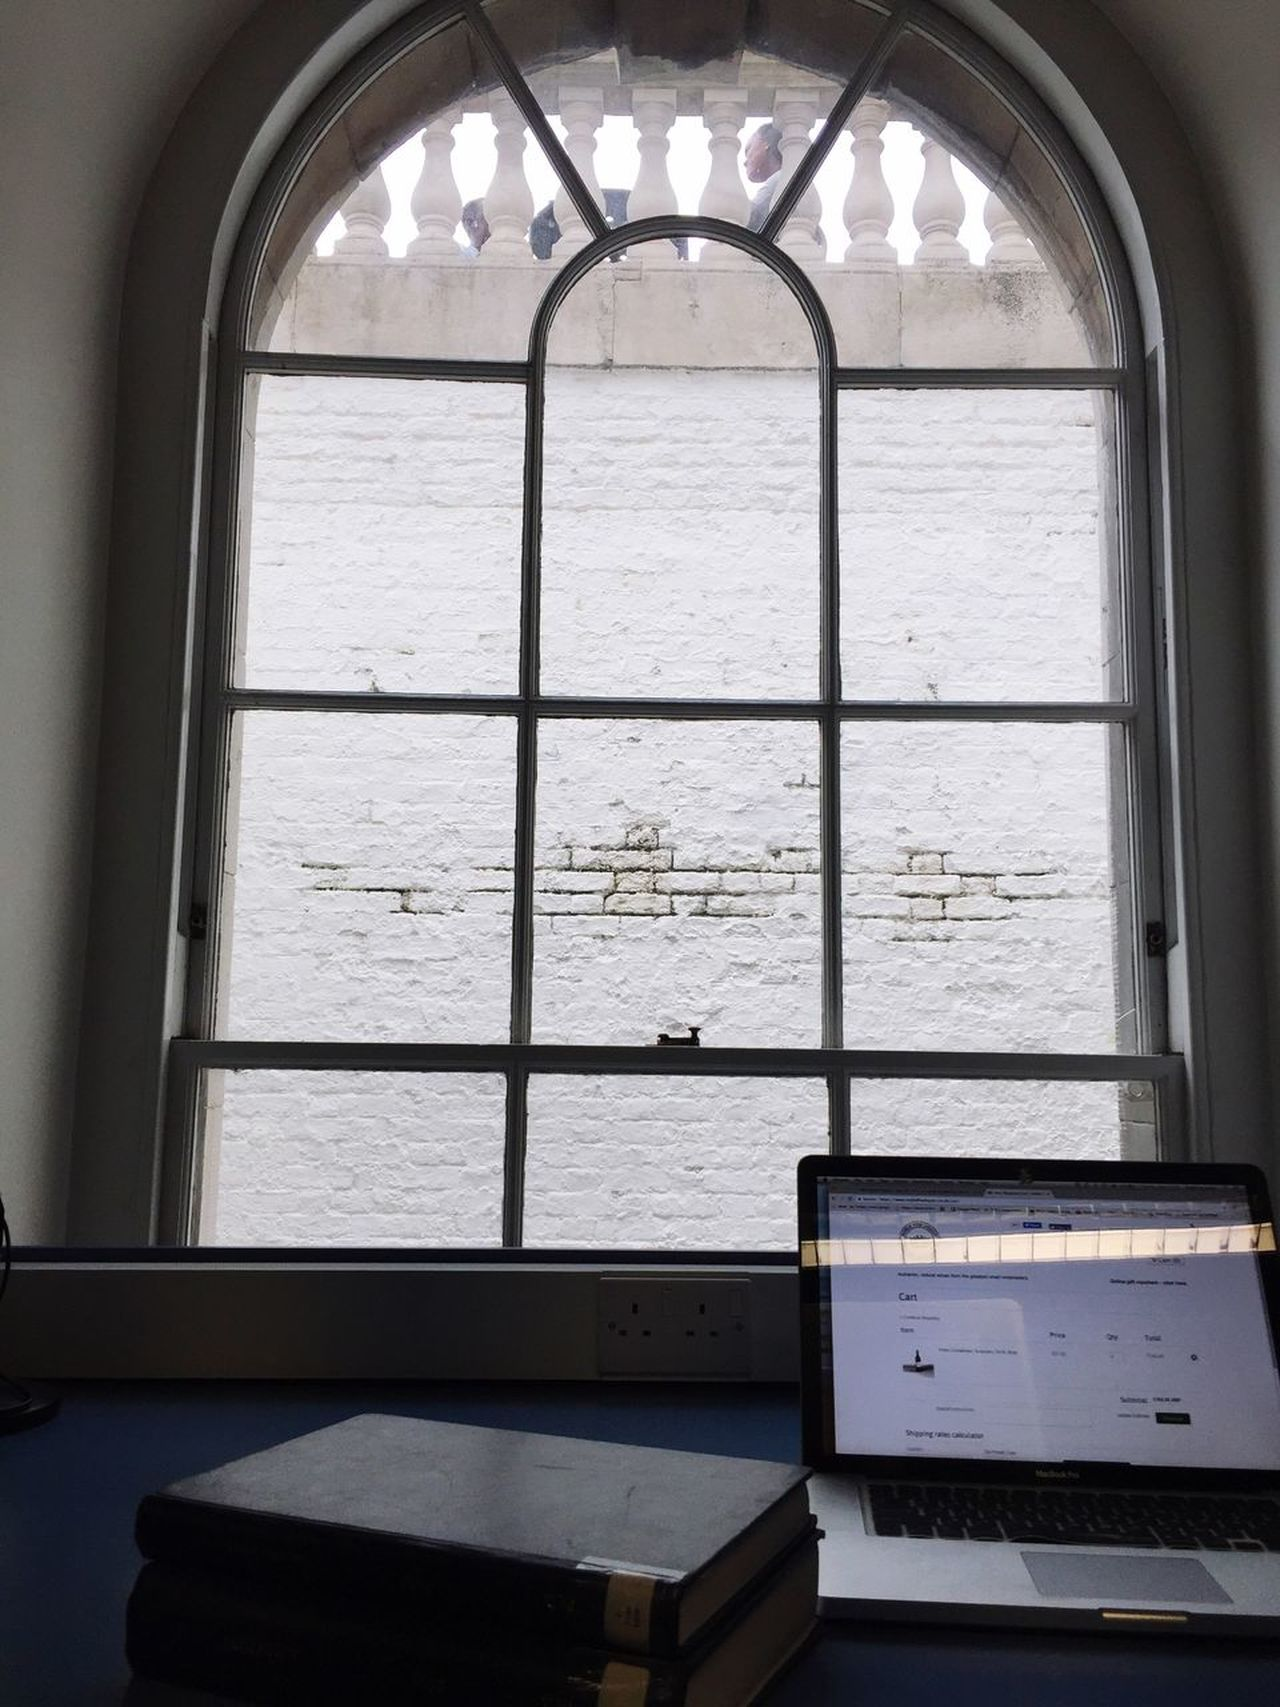 EyeEm Selects studying hard Window Indoors  No People Day Architecture Water Studying Books Laptop